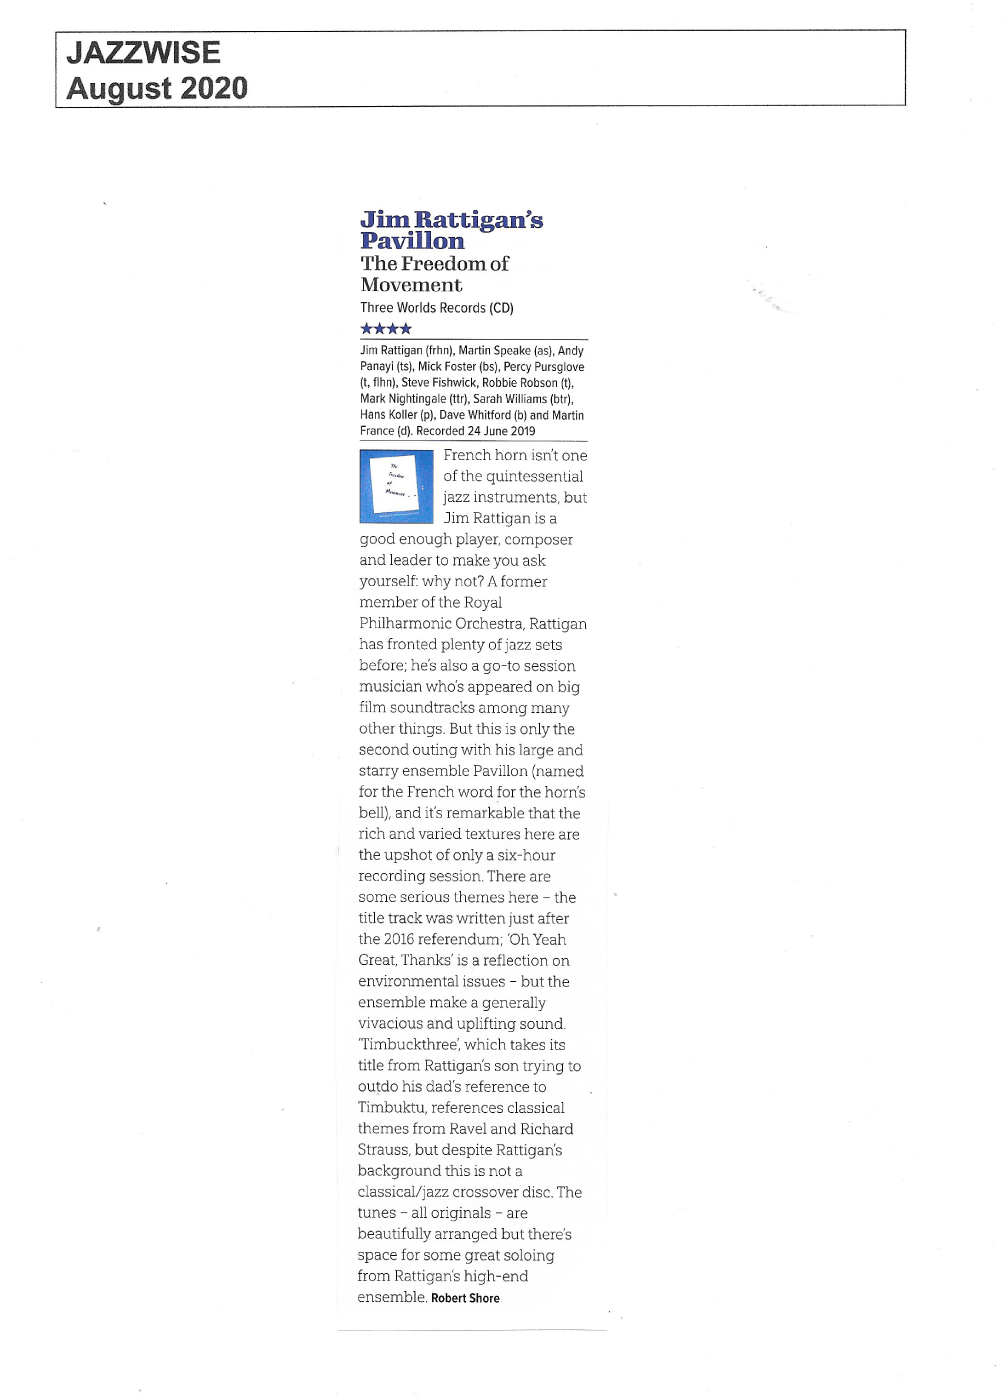 Jazzwise August 2020 review The Freedom of Movement